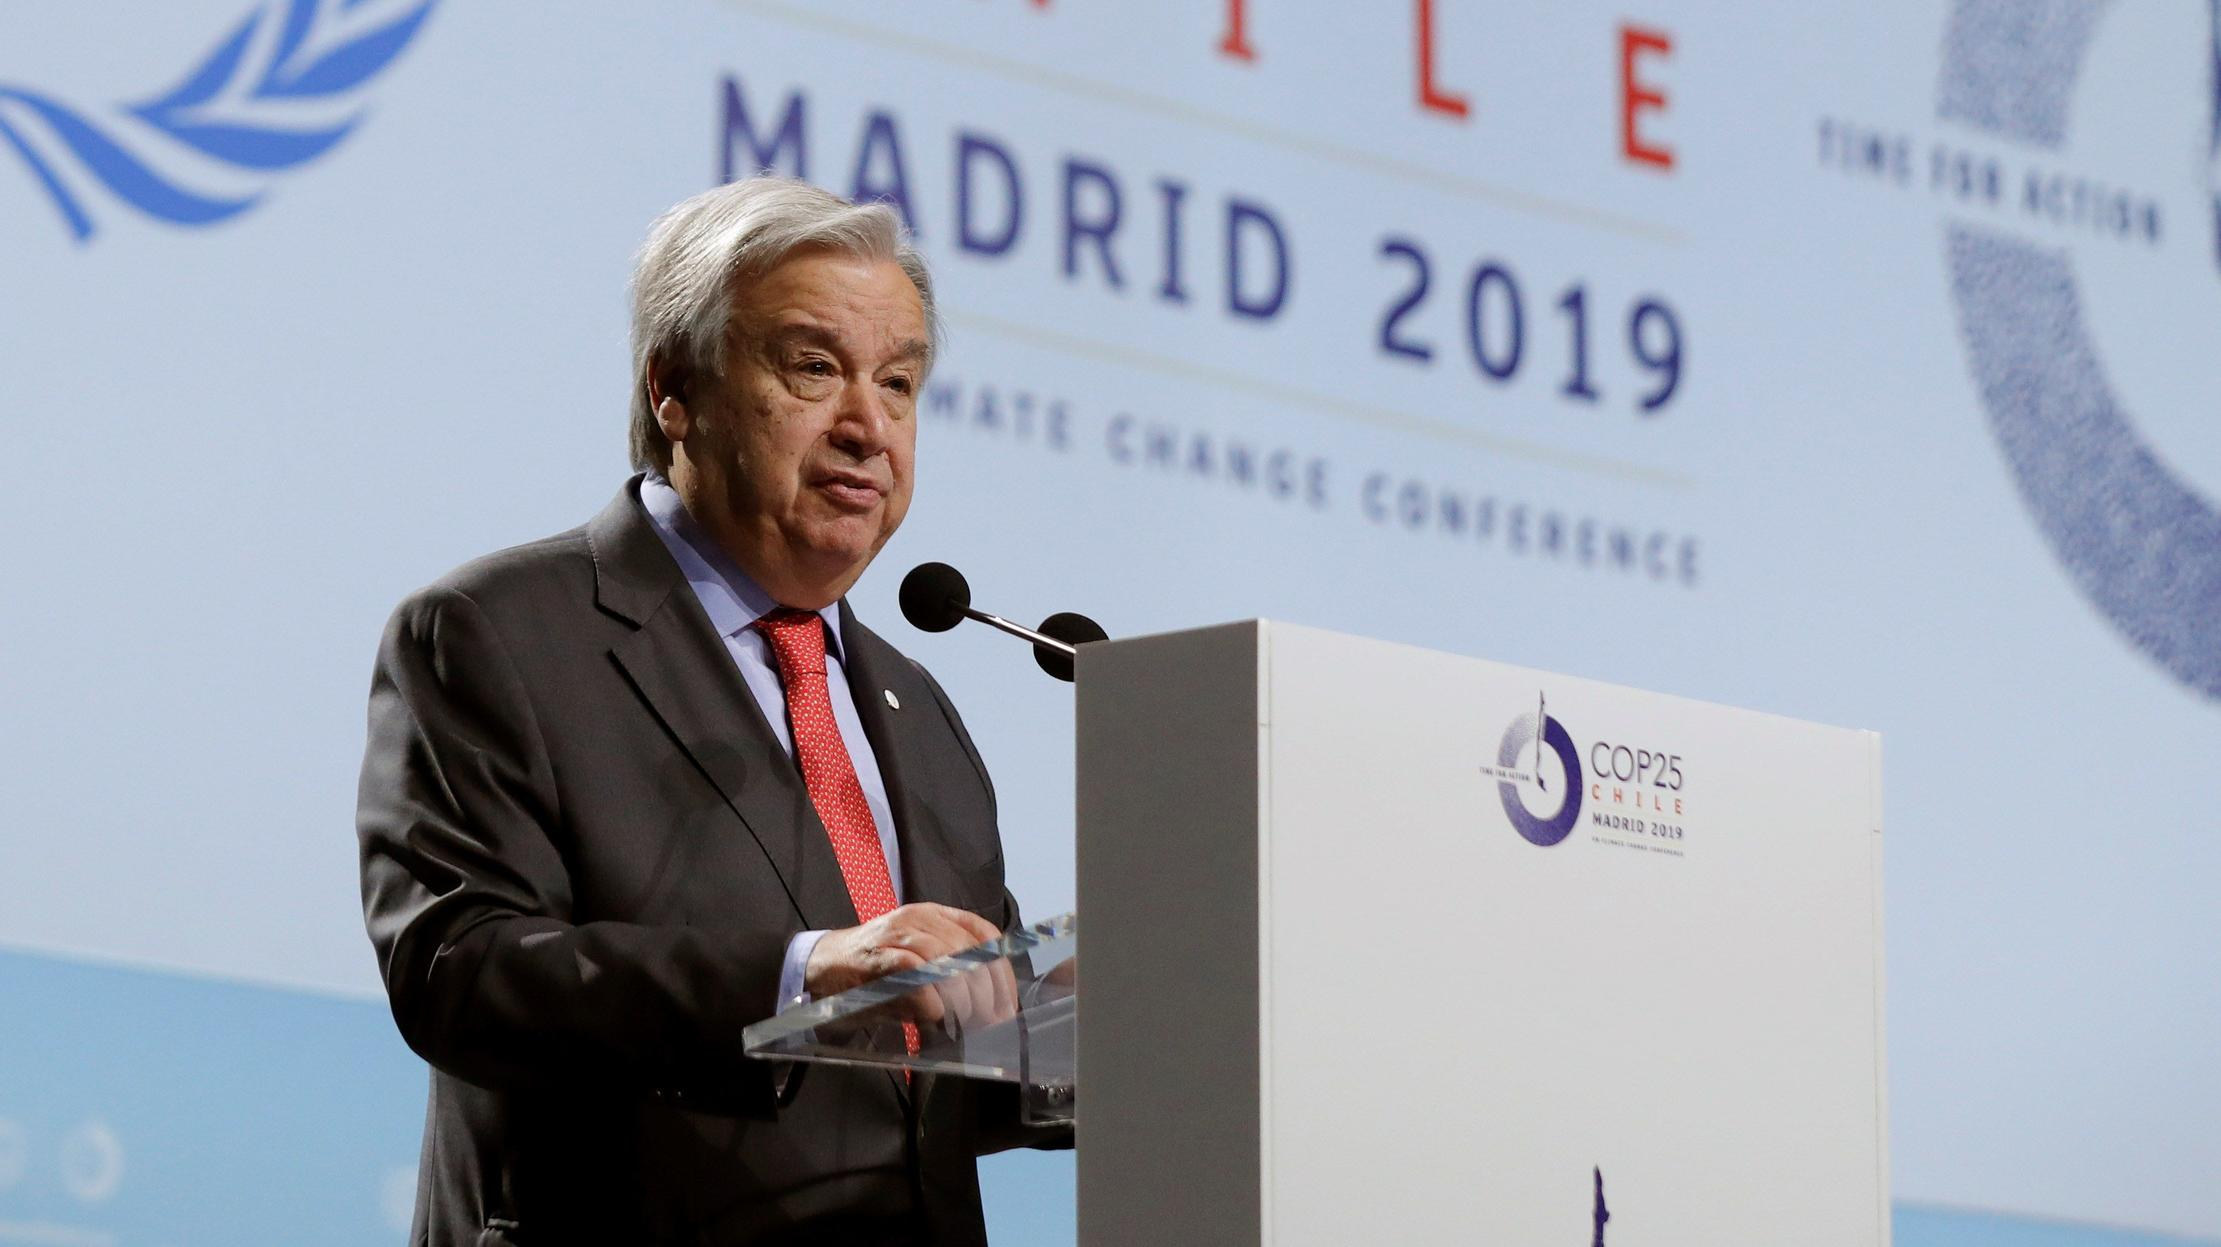 Secretary-General of the United Nations, Antonio Guterres L, delivers a speech during the opening ceremony of the COP25 held in Madrid, Spain, 02 December 2019. The UN Climate Change Conference COP25 runs from 02 to 13 December 2019 in the Spanish c